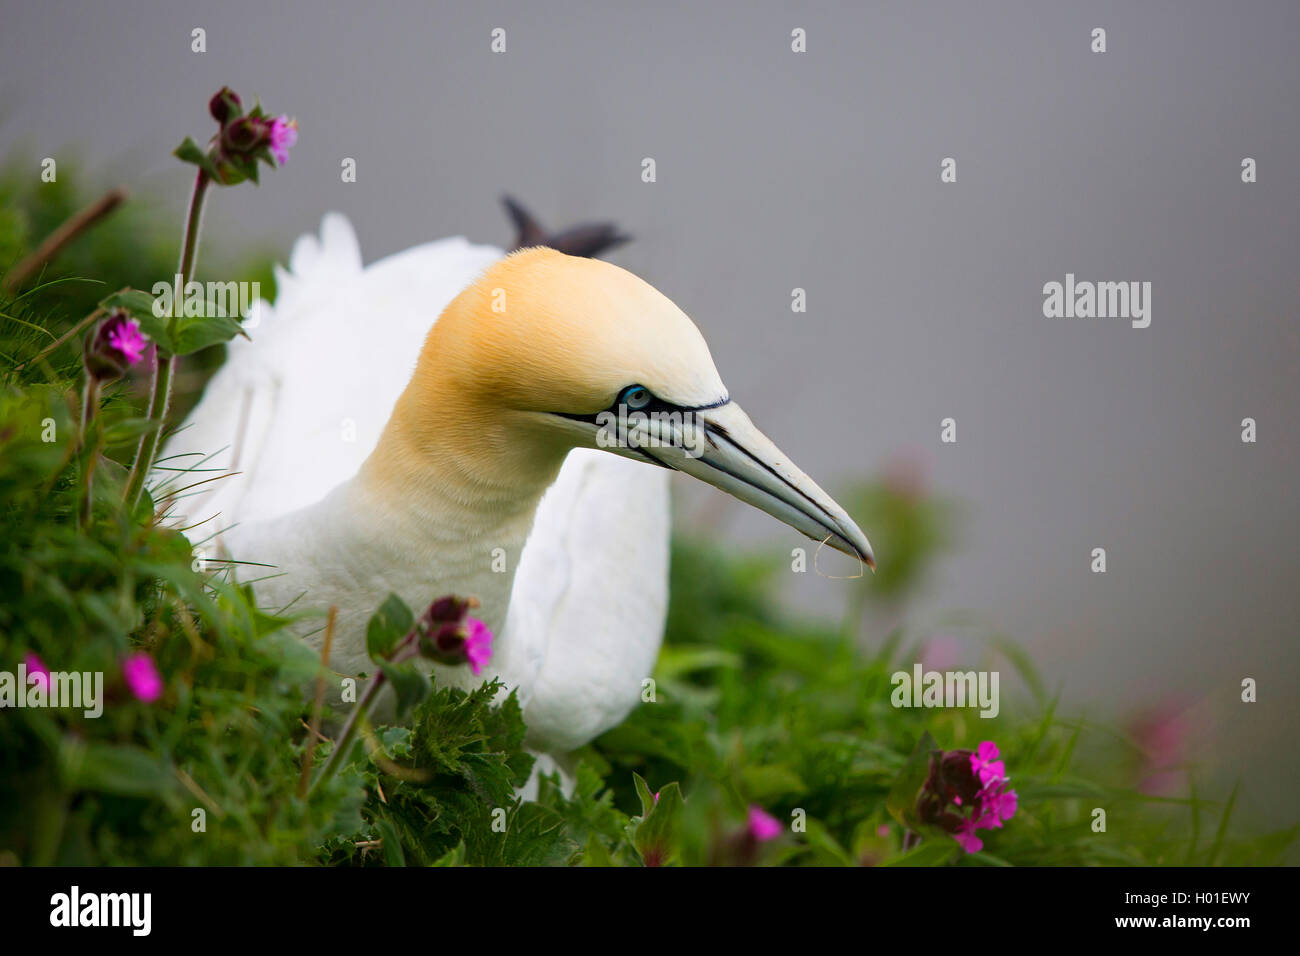 northern gannet (Sula bassana, Morus bassanus), between blooming red campions, United Kingdom, Scotland Stock Photo